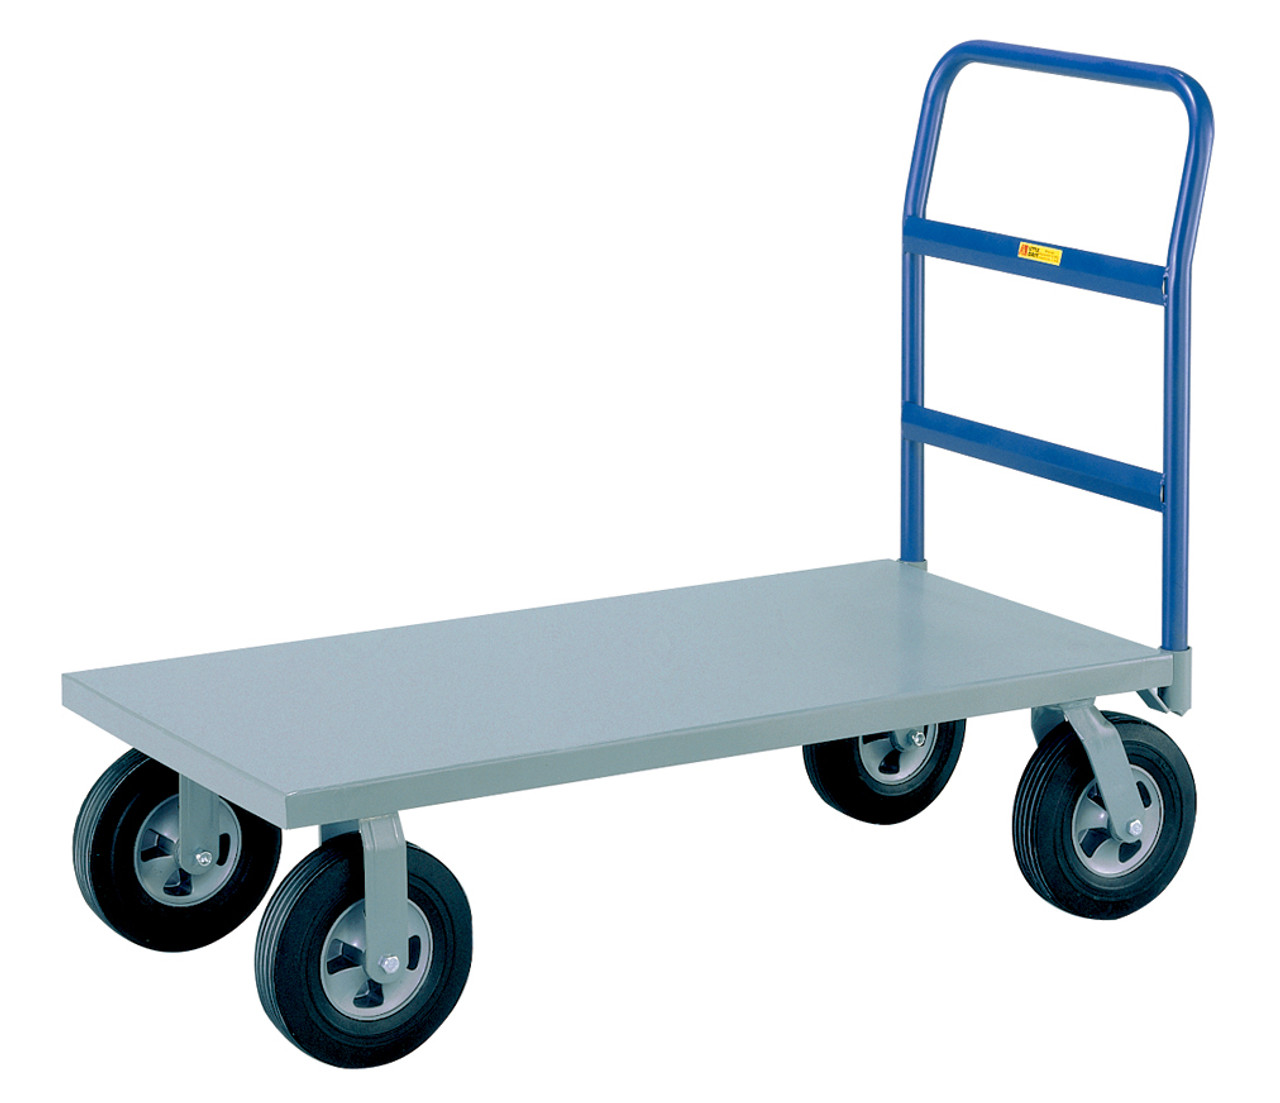 Cushion Load Platform Trucks